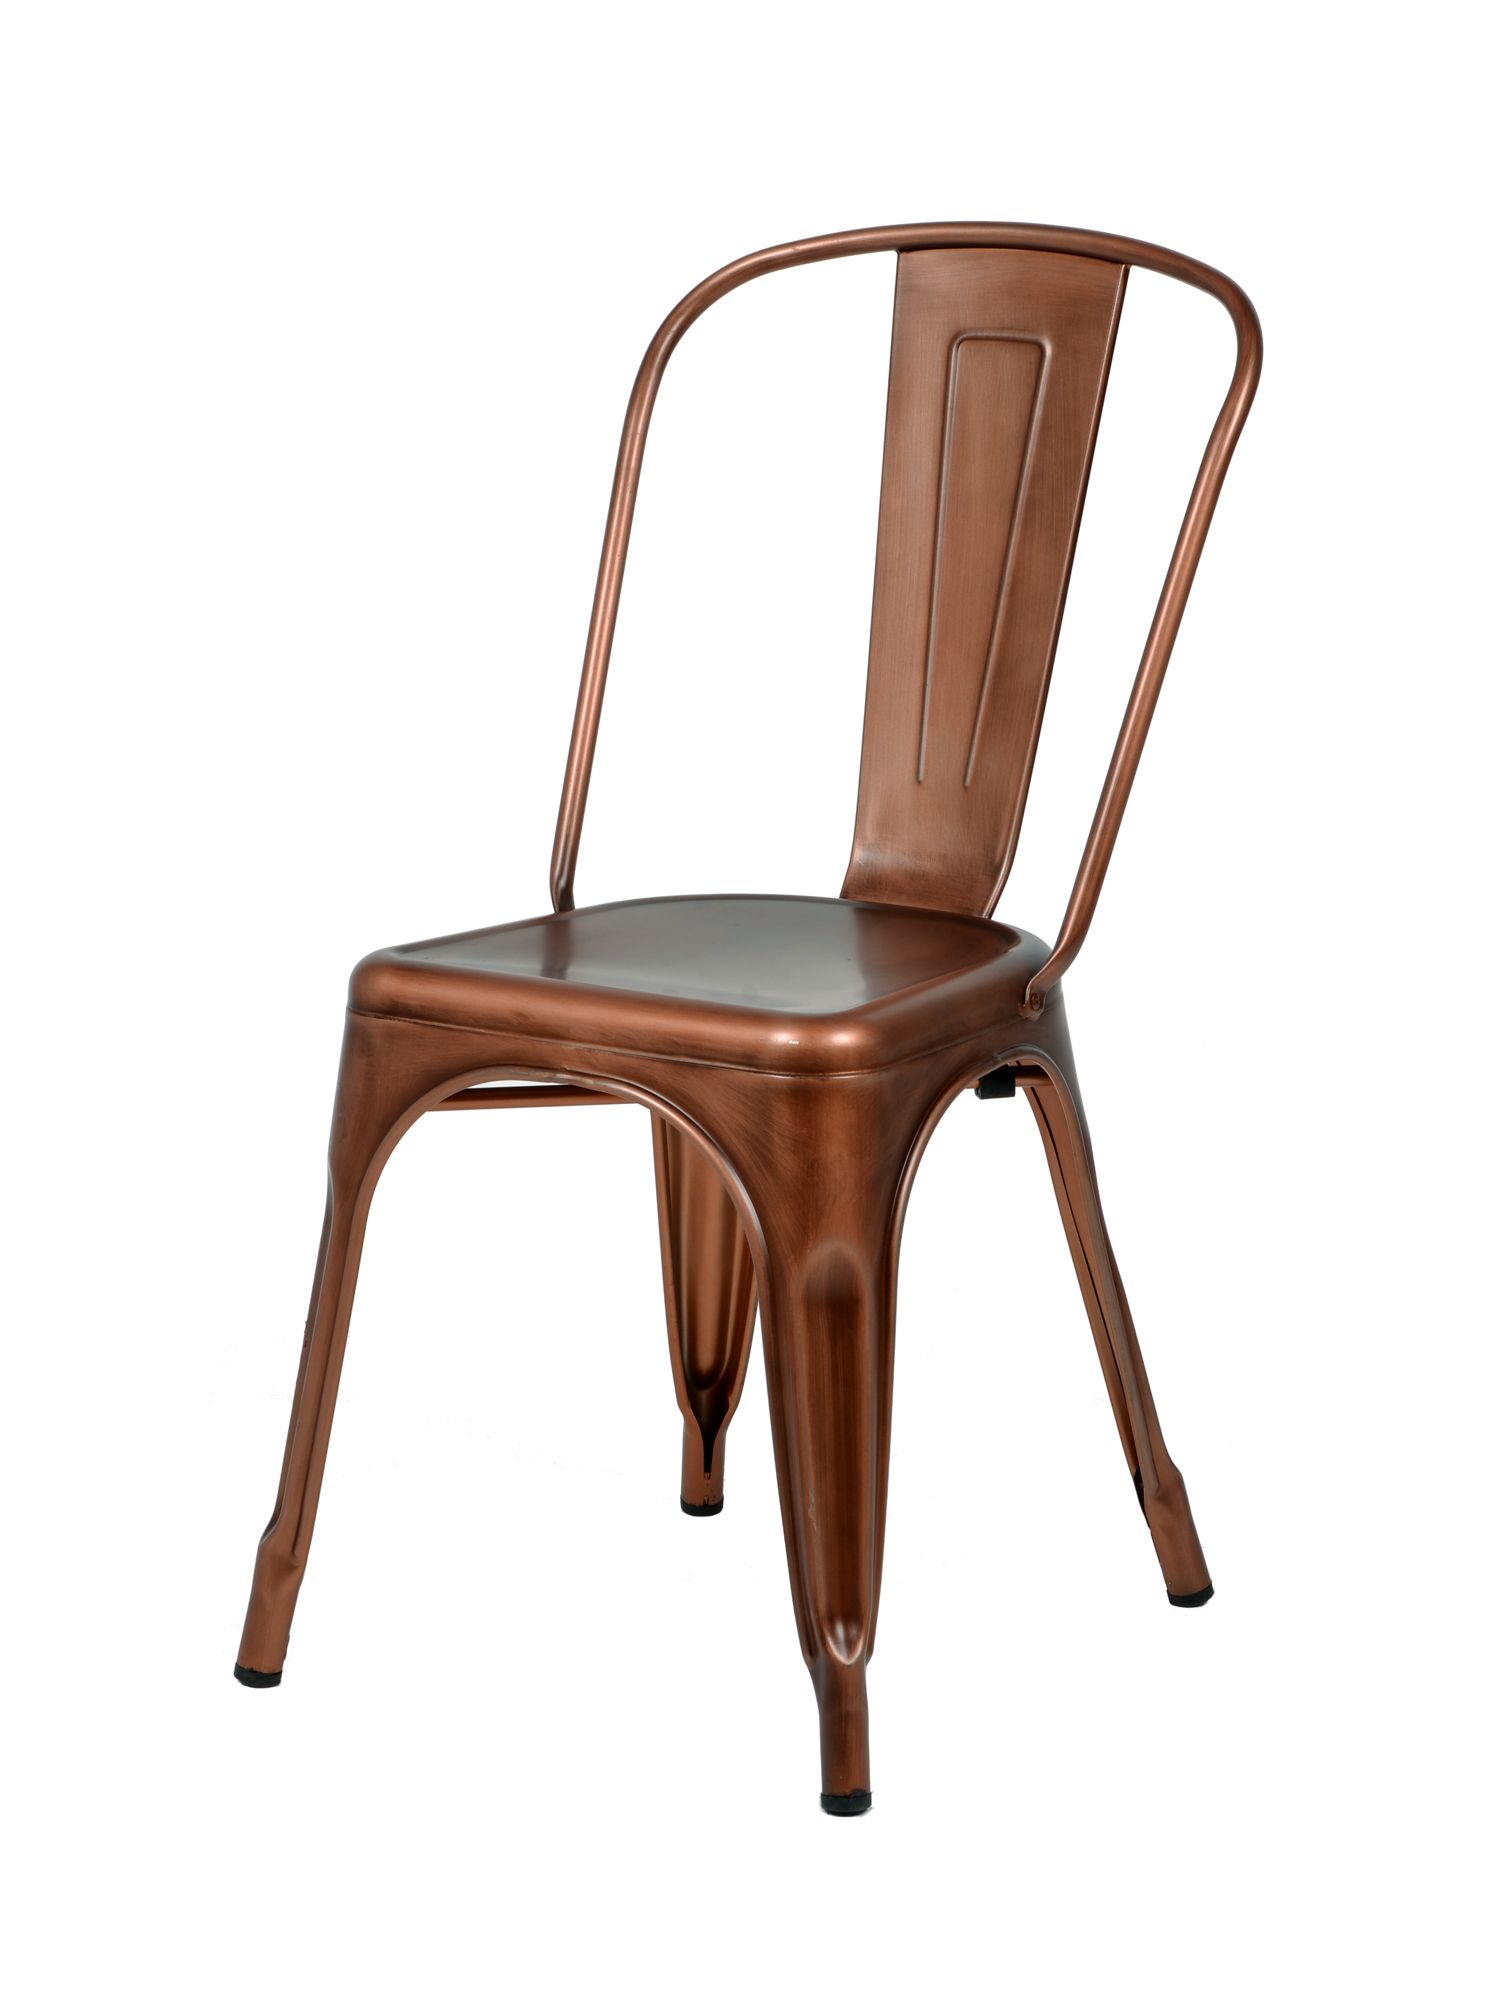 copper tolix chair. Black Bedroom Furniture Sets. Home Design Ideas